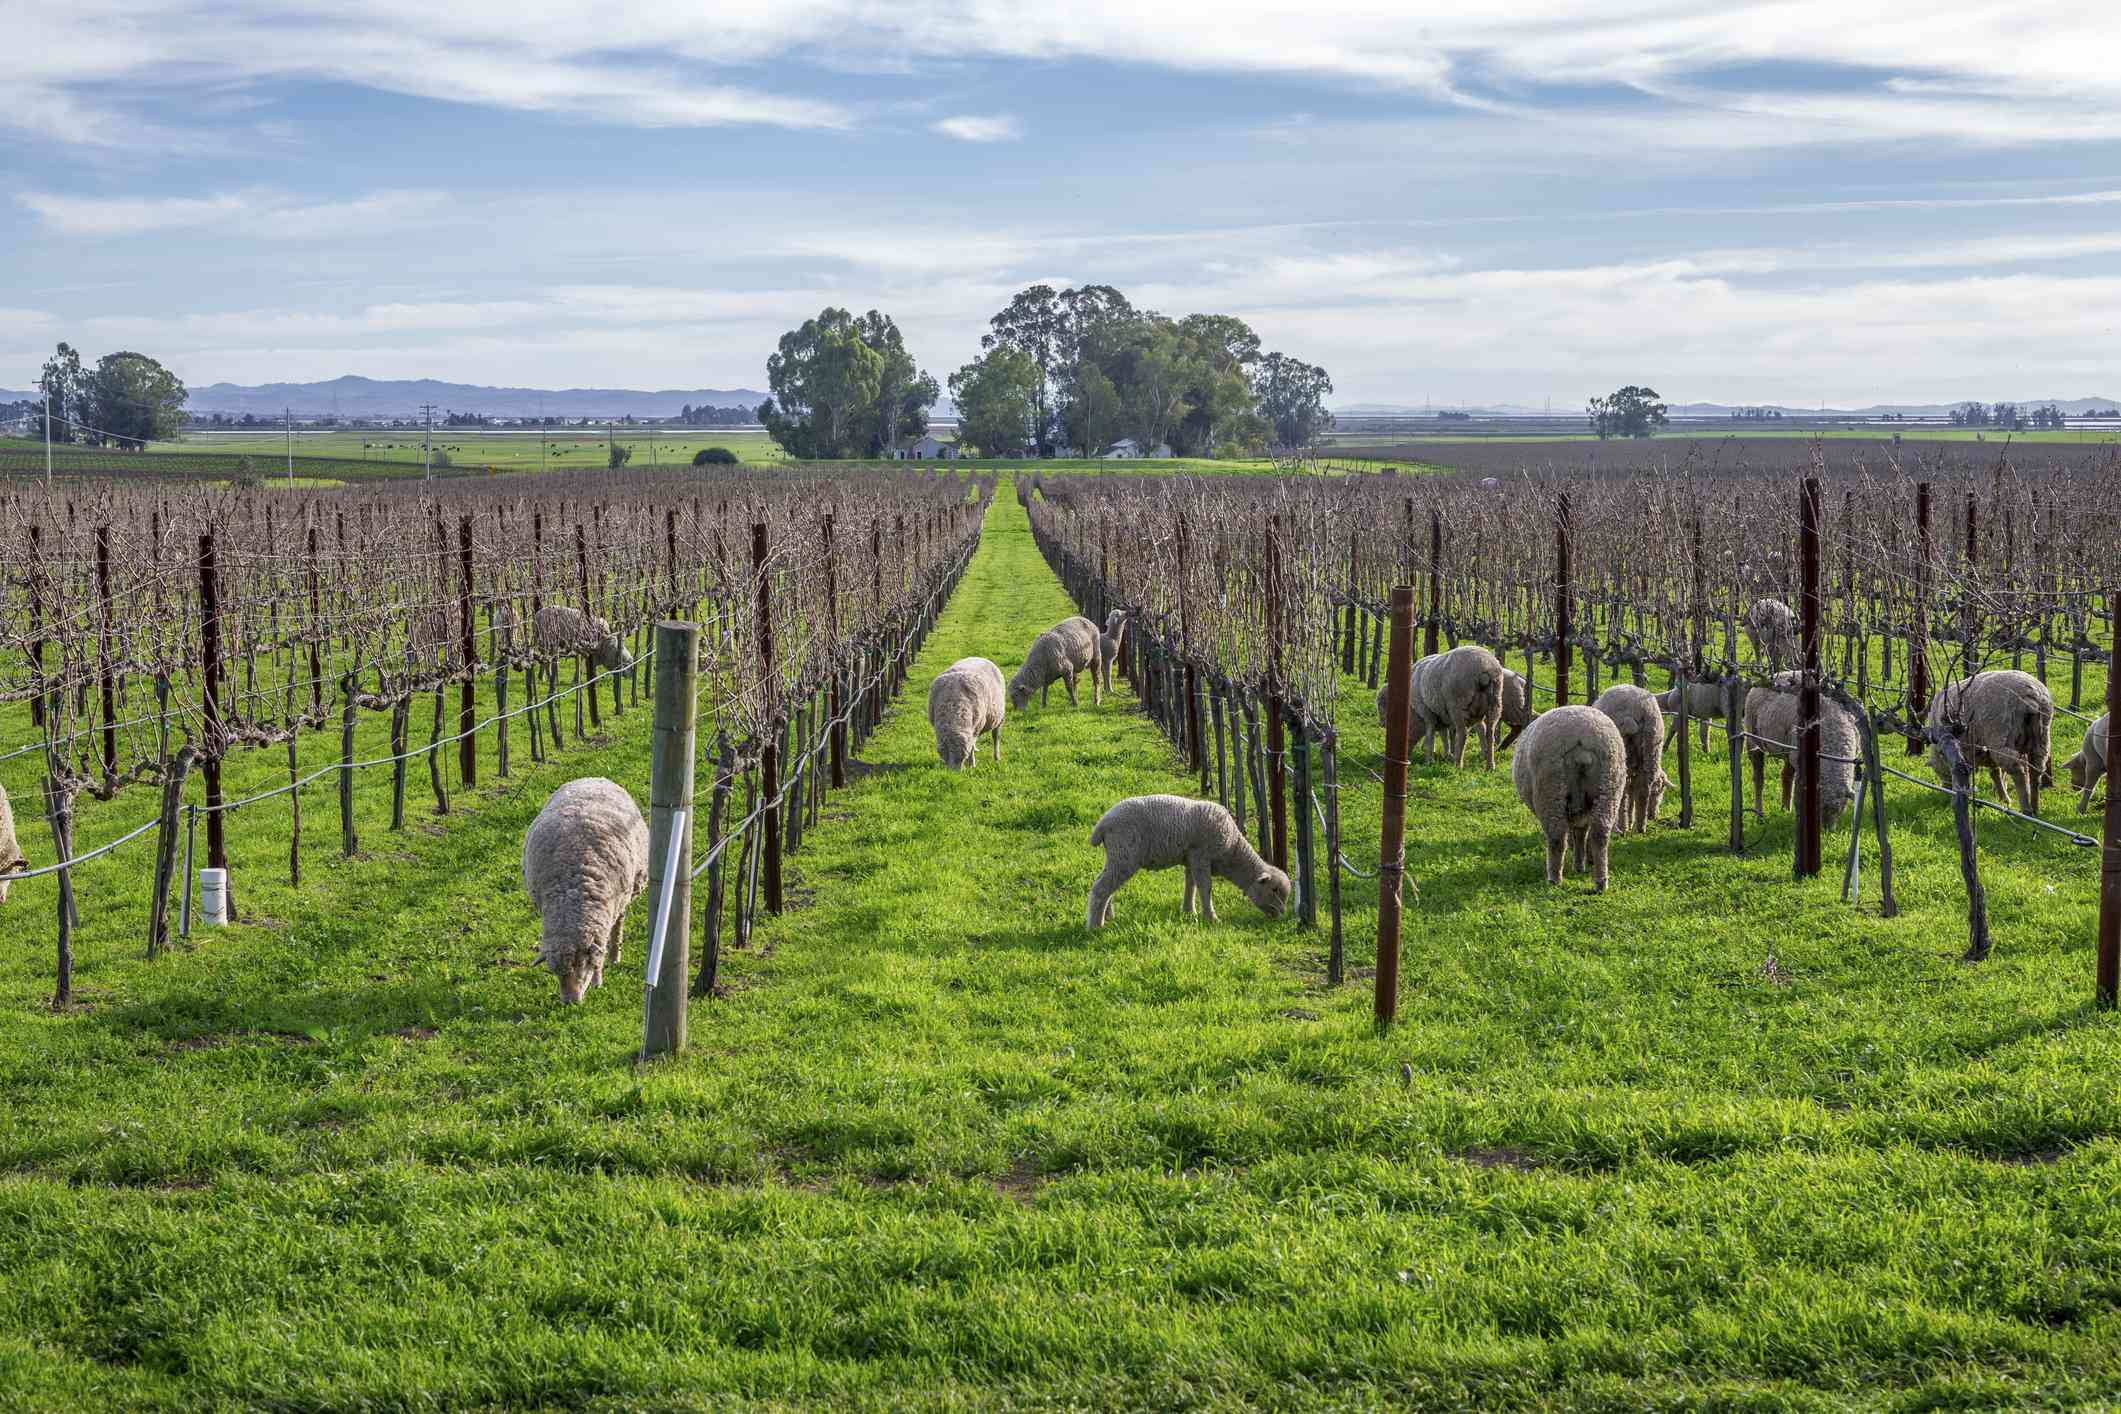 Sheep grazing in a winery.